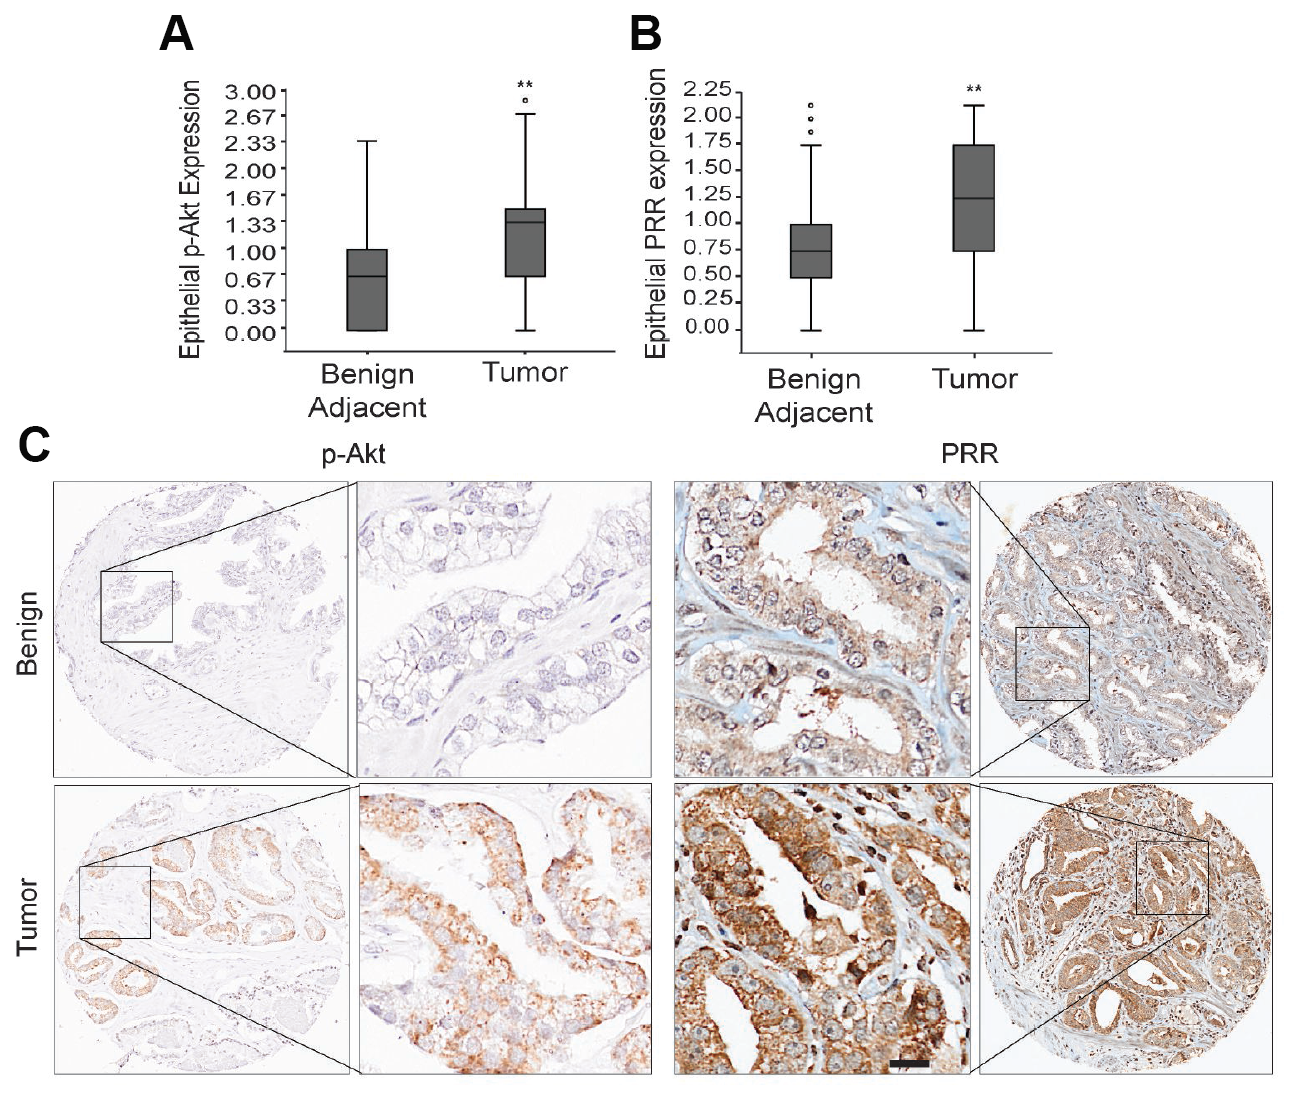 Analysis of p-Akt and PRR expression in prostate cancer tissue microarrays.